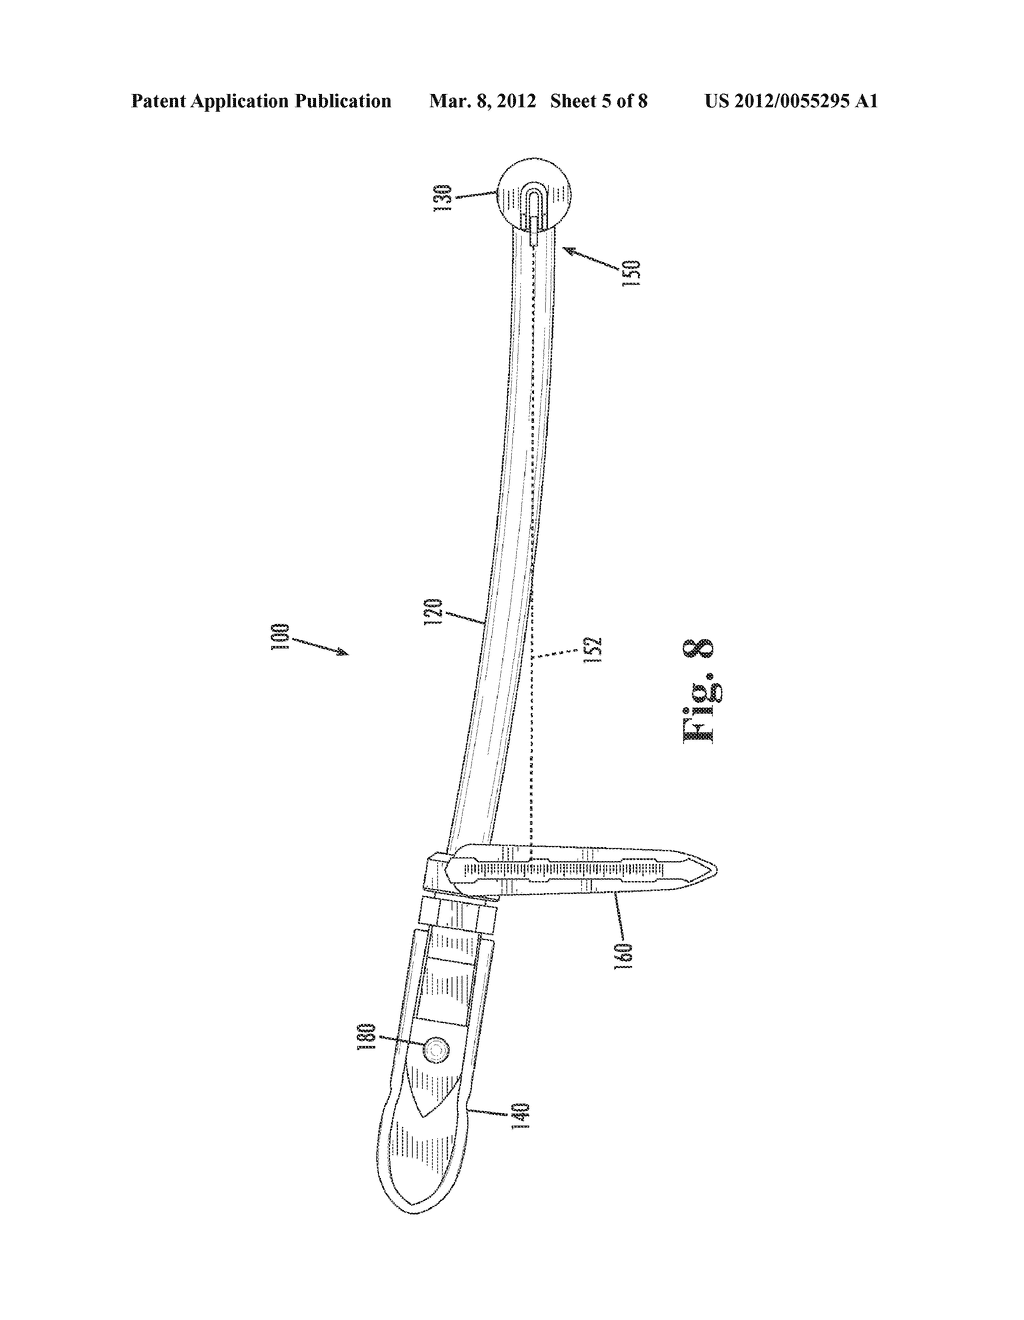 Laser Beam Deflection Torque Wrench Diagram Schematic And Image 06